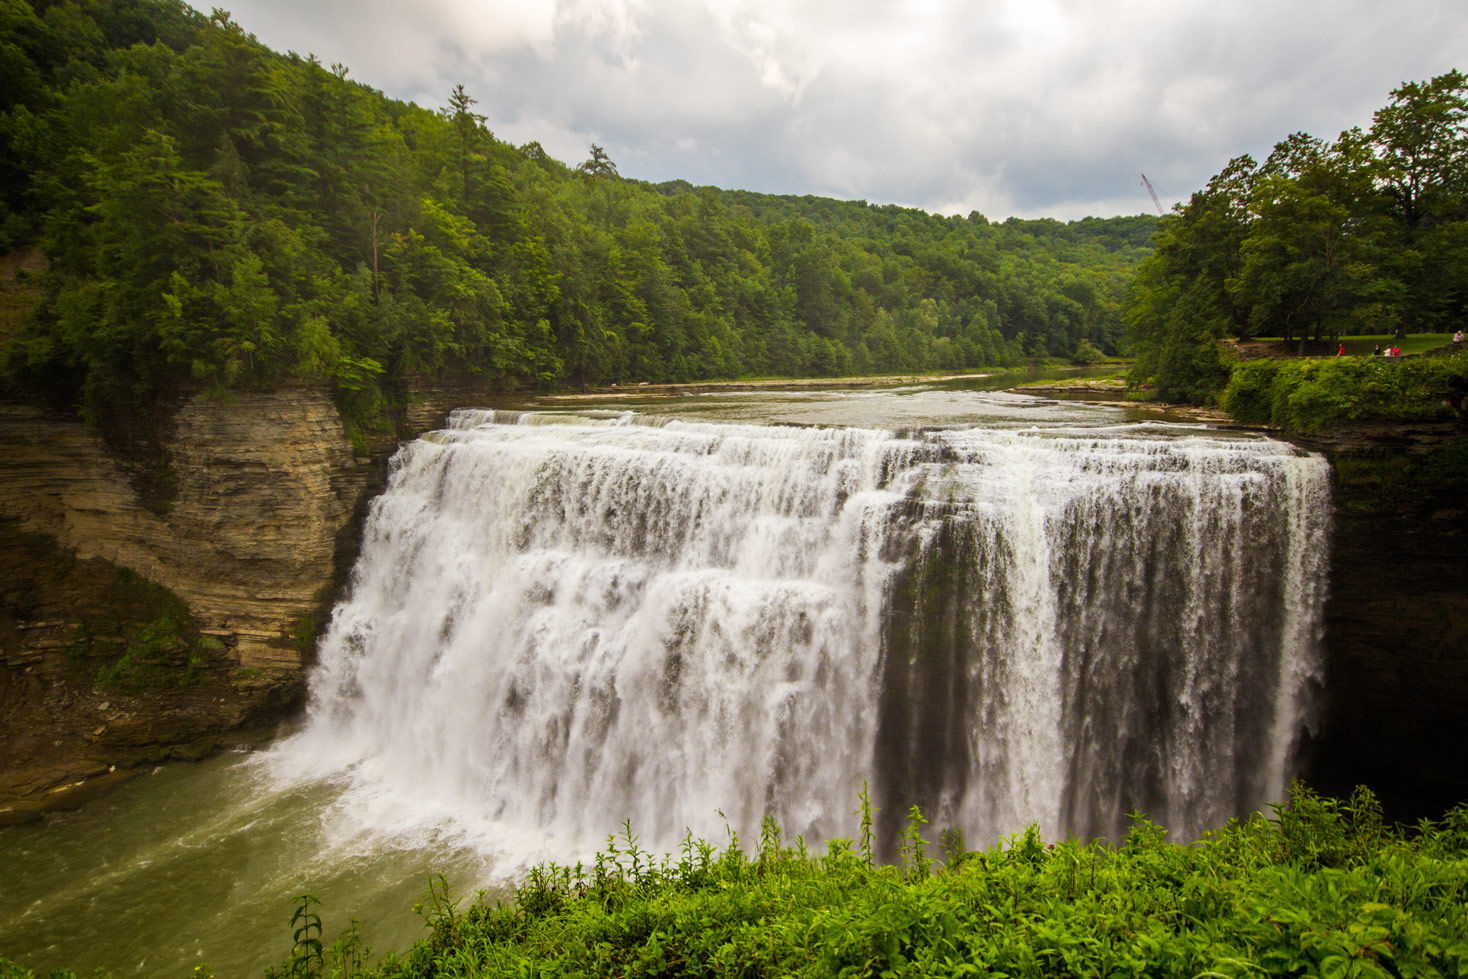 Middle Falls in Letchworth State Park in New York State